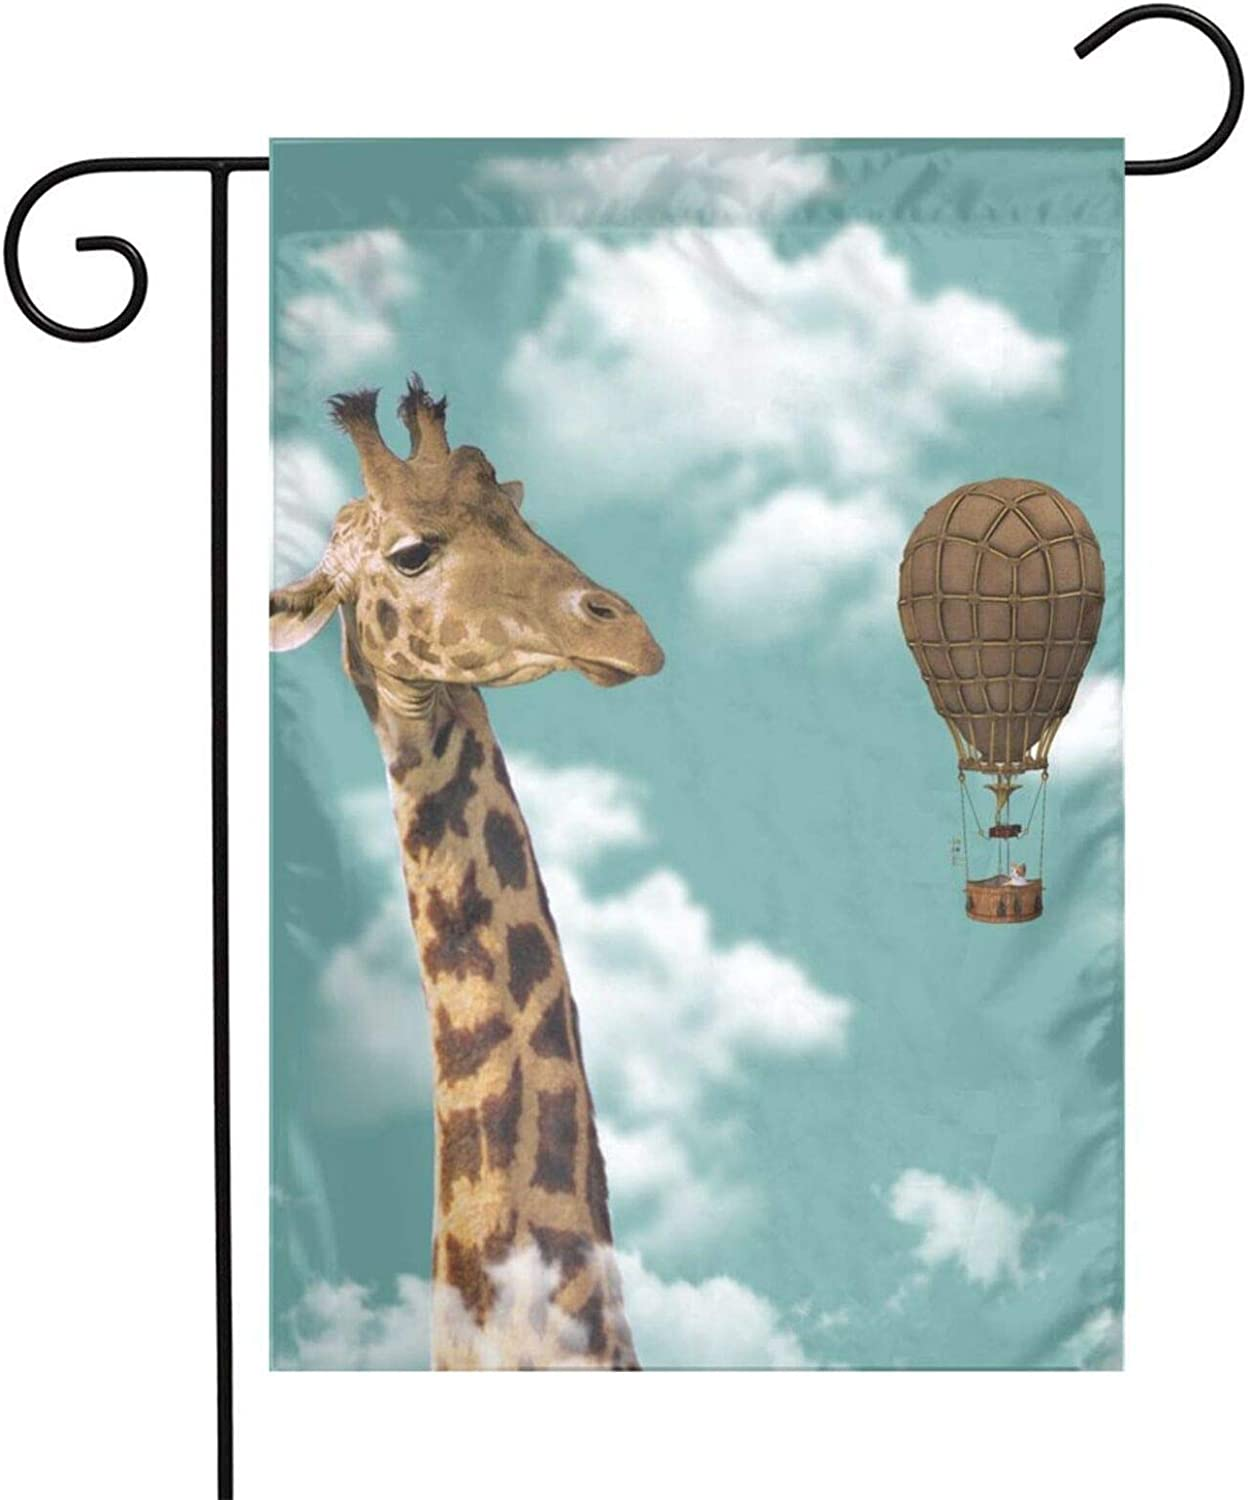 pengyong Garden Flags Giraffe Hot Air Balloon Yard Flag Decorative for Outdoor,Welcome Home Holiday Double Sided 12x18 Inch